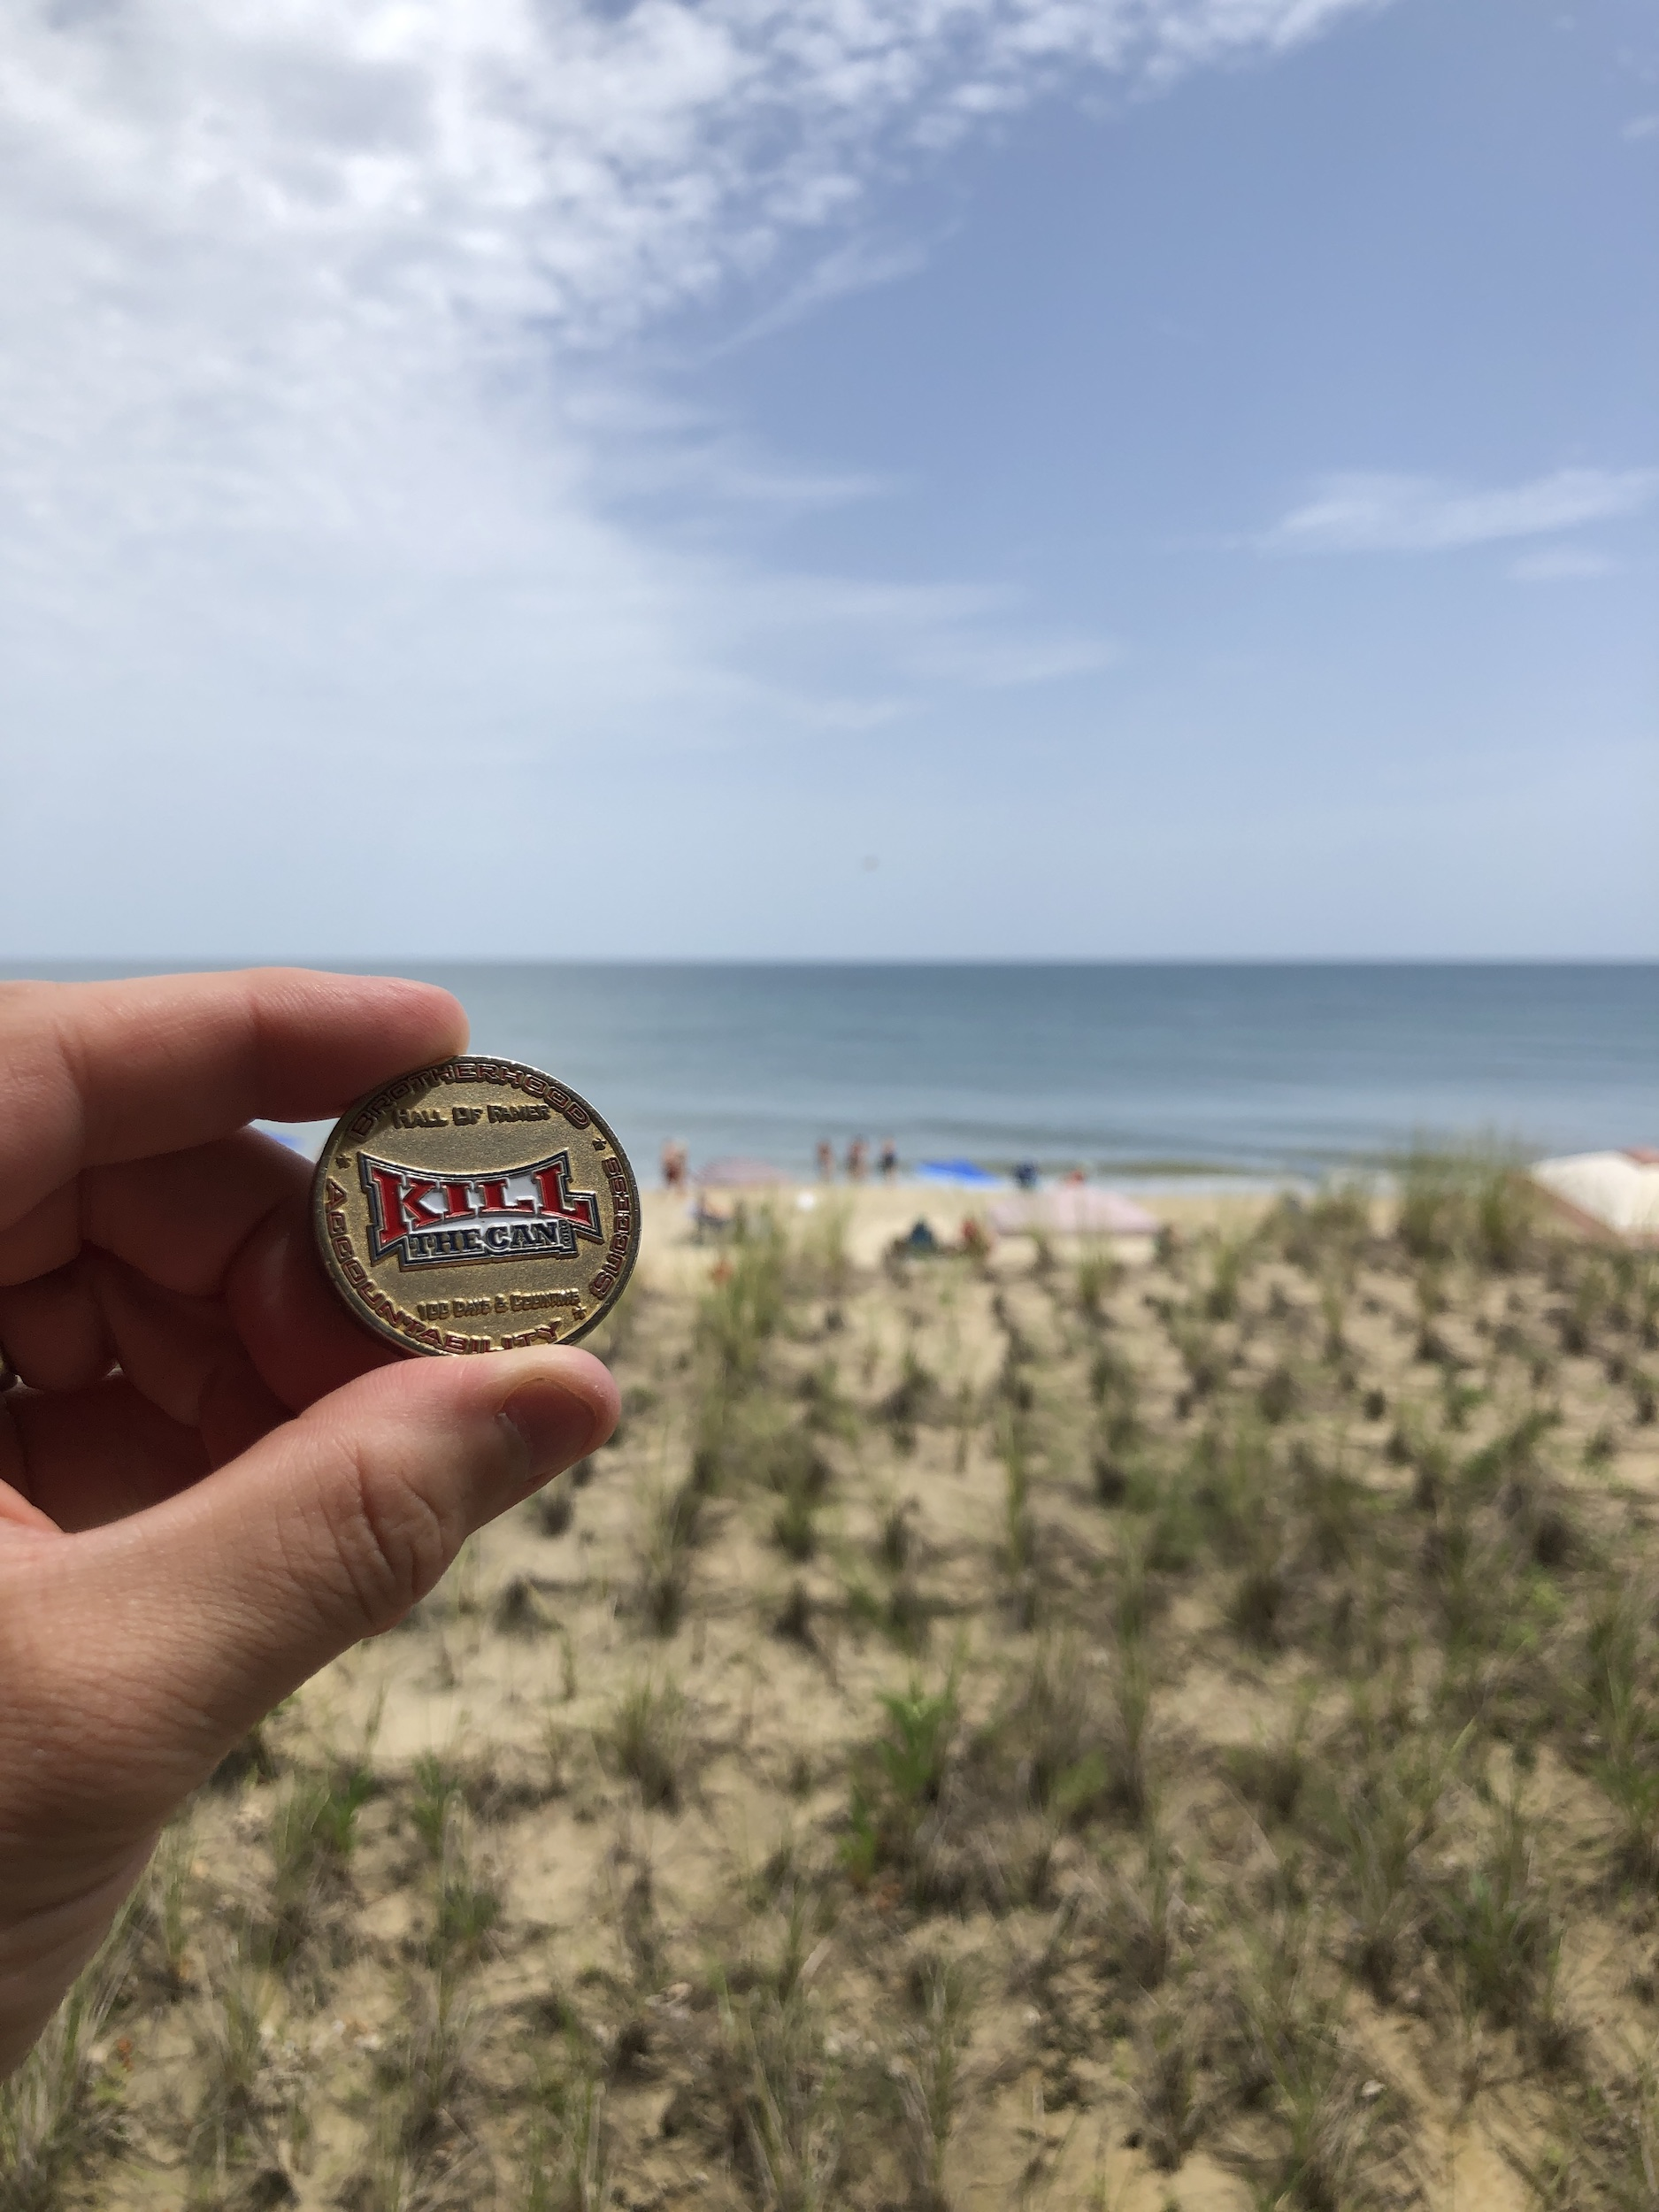 Chewie Kill Devil Hills Outer Banks - 8.2.2020